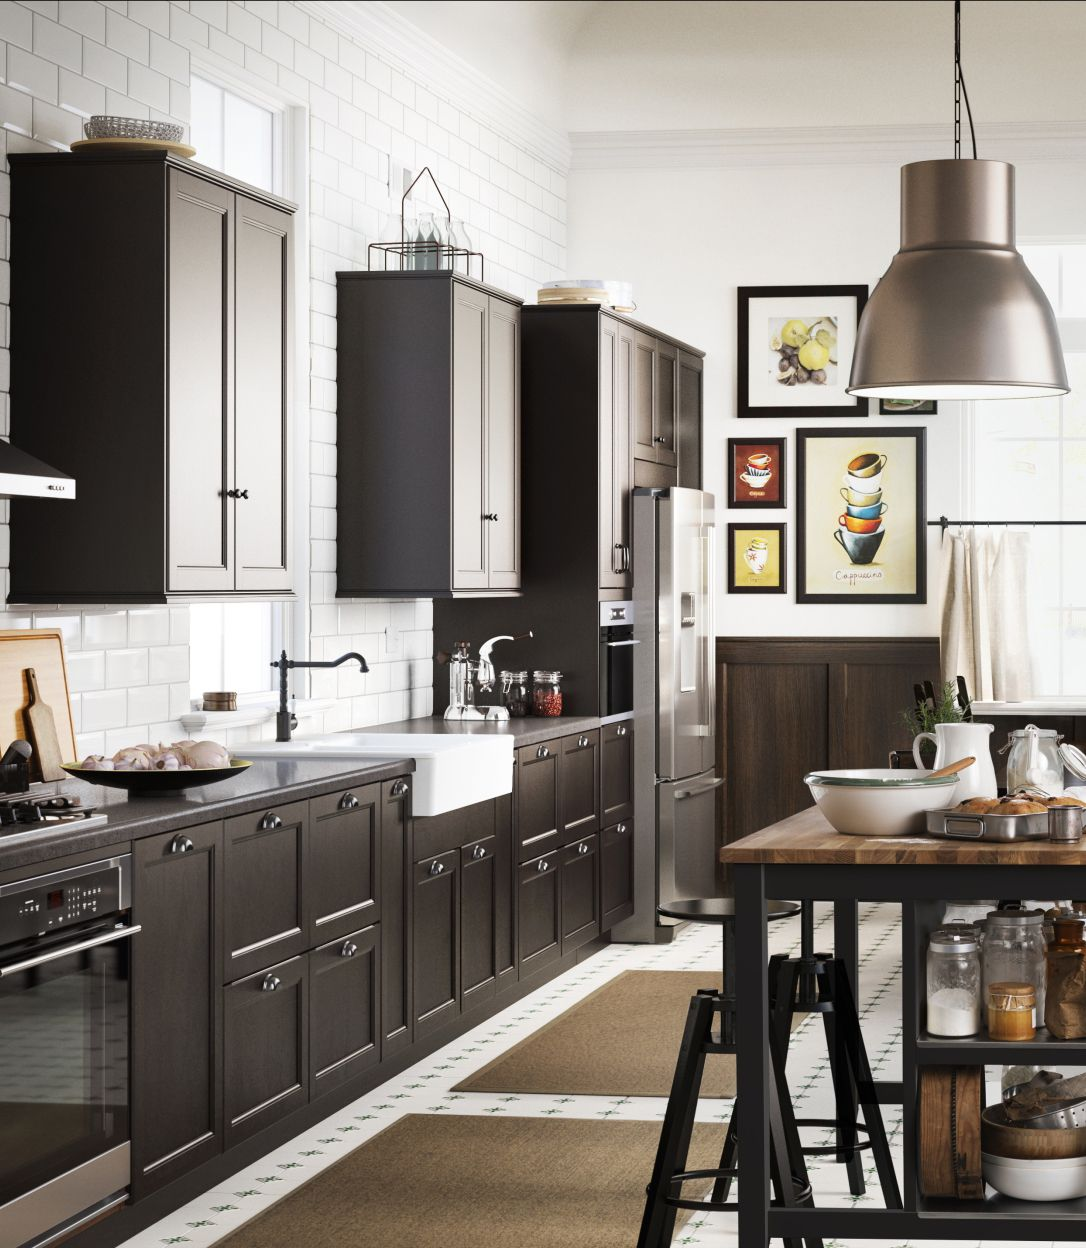 Ikea Usa Kitchen Cabinets: From A Farmhouse Feel To A Sleek And Modern Look, IKEA